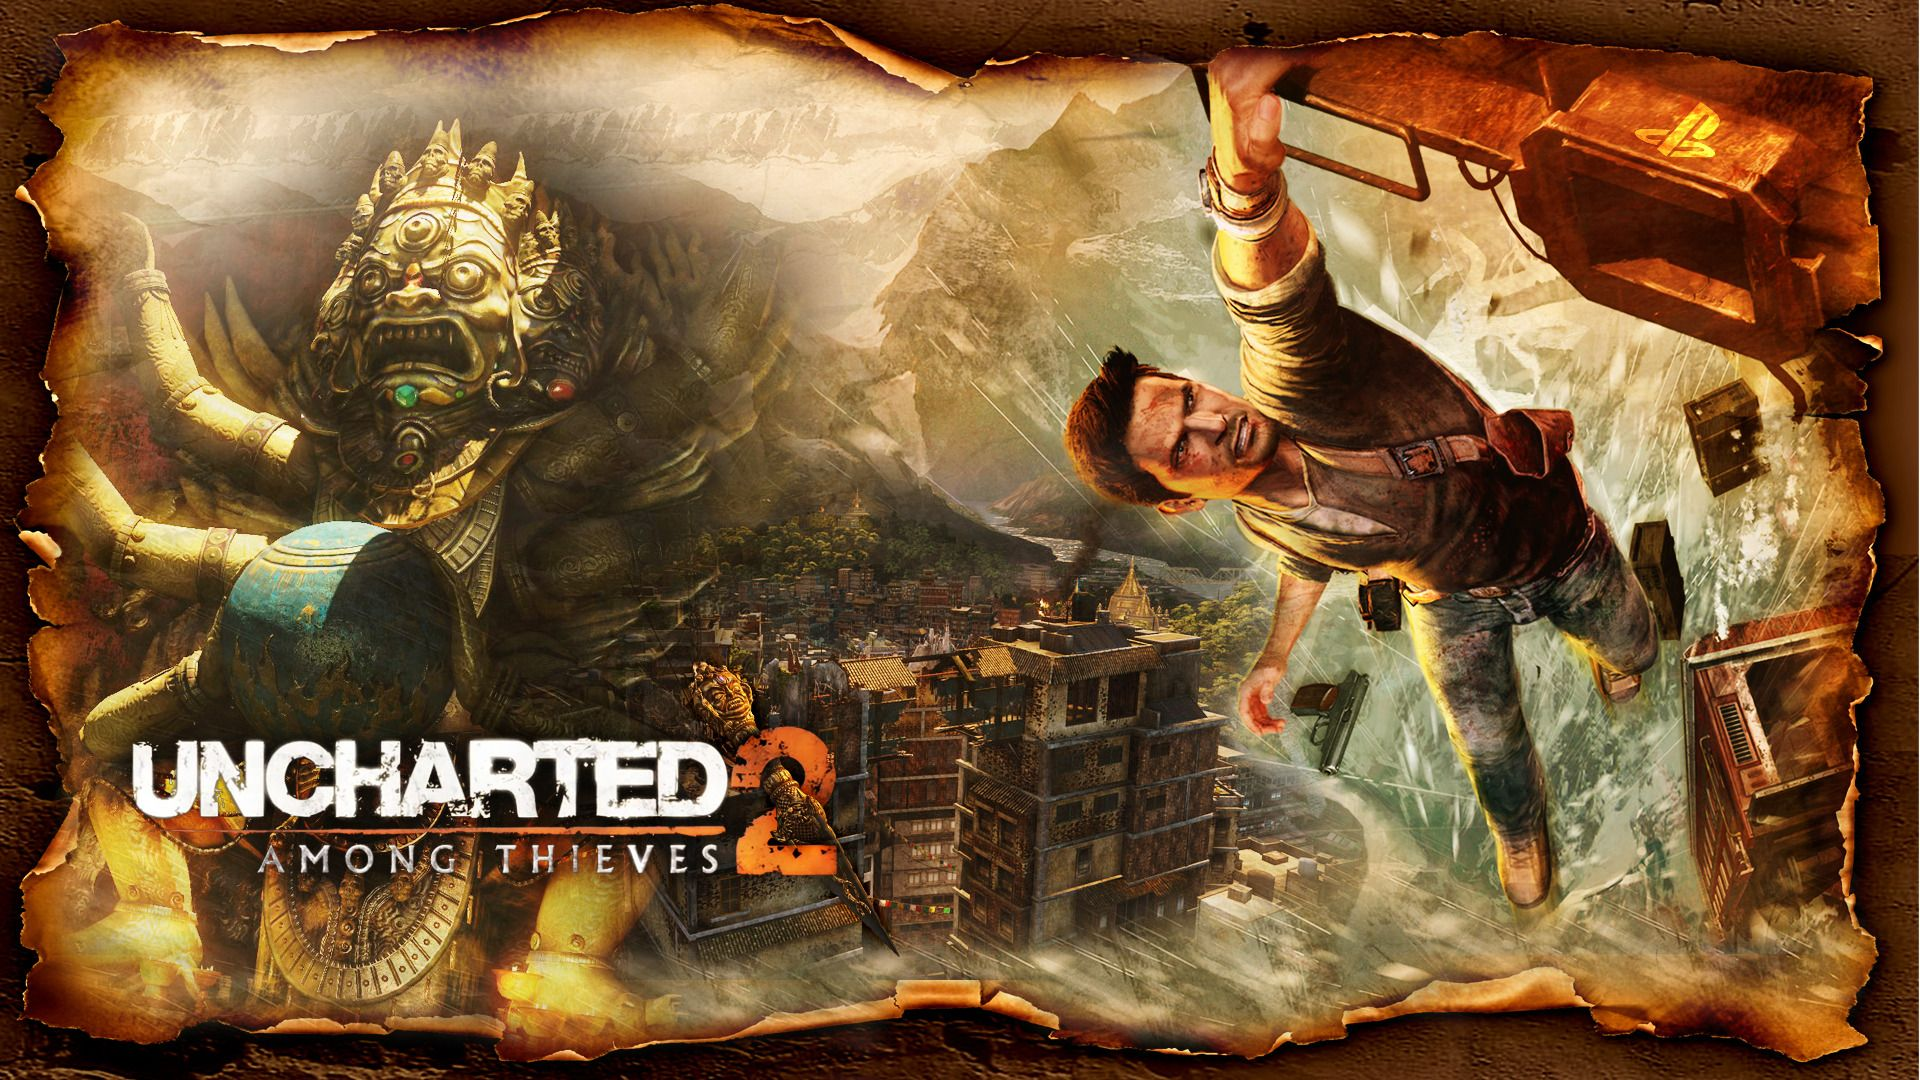 Uncharted 2 Among Thieves Wallpaper Con Immagini Giochi